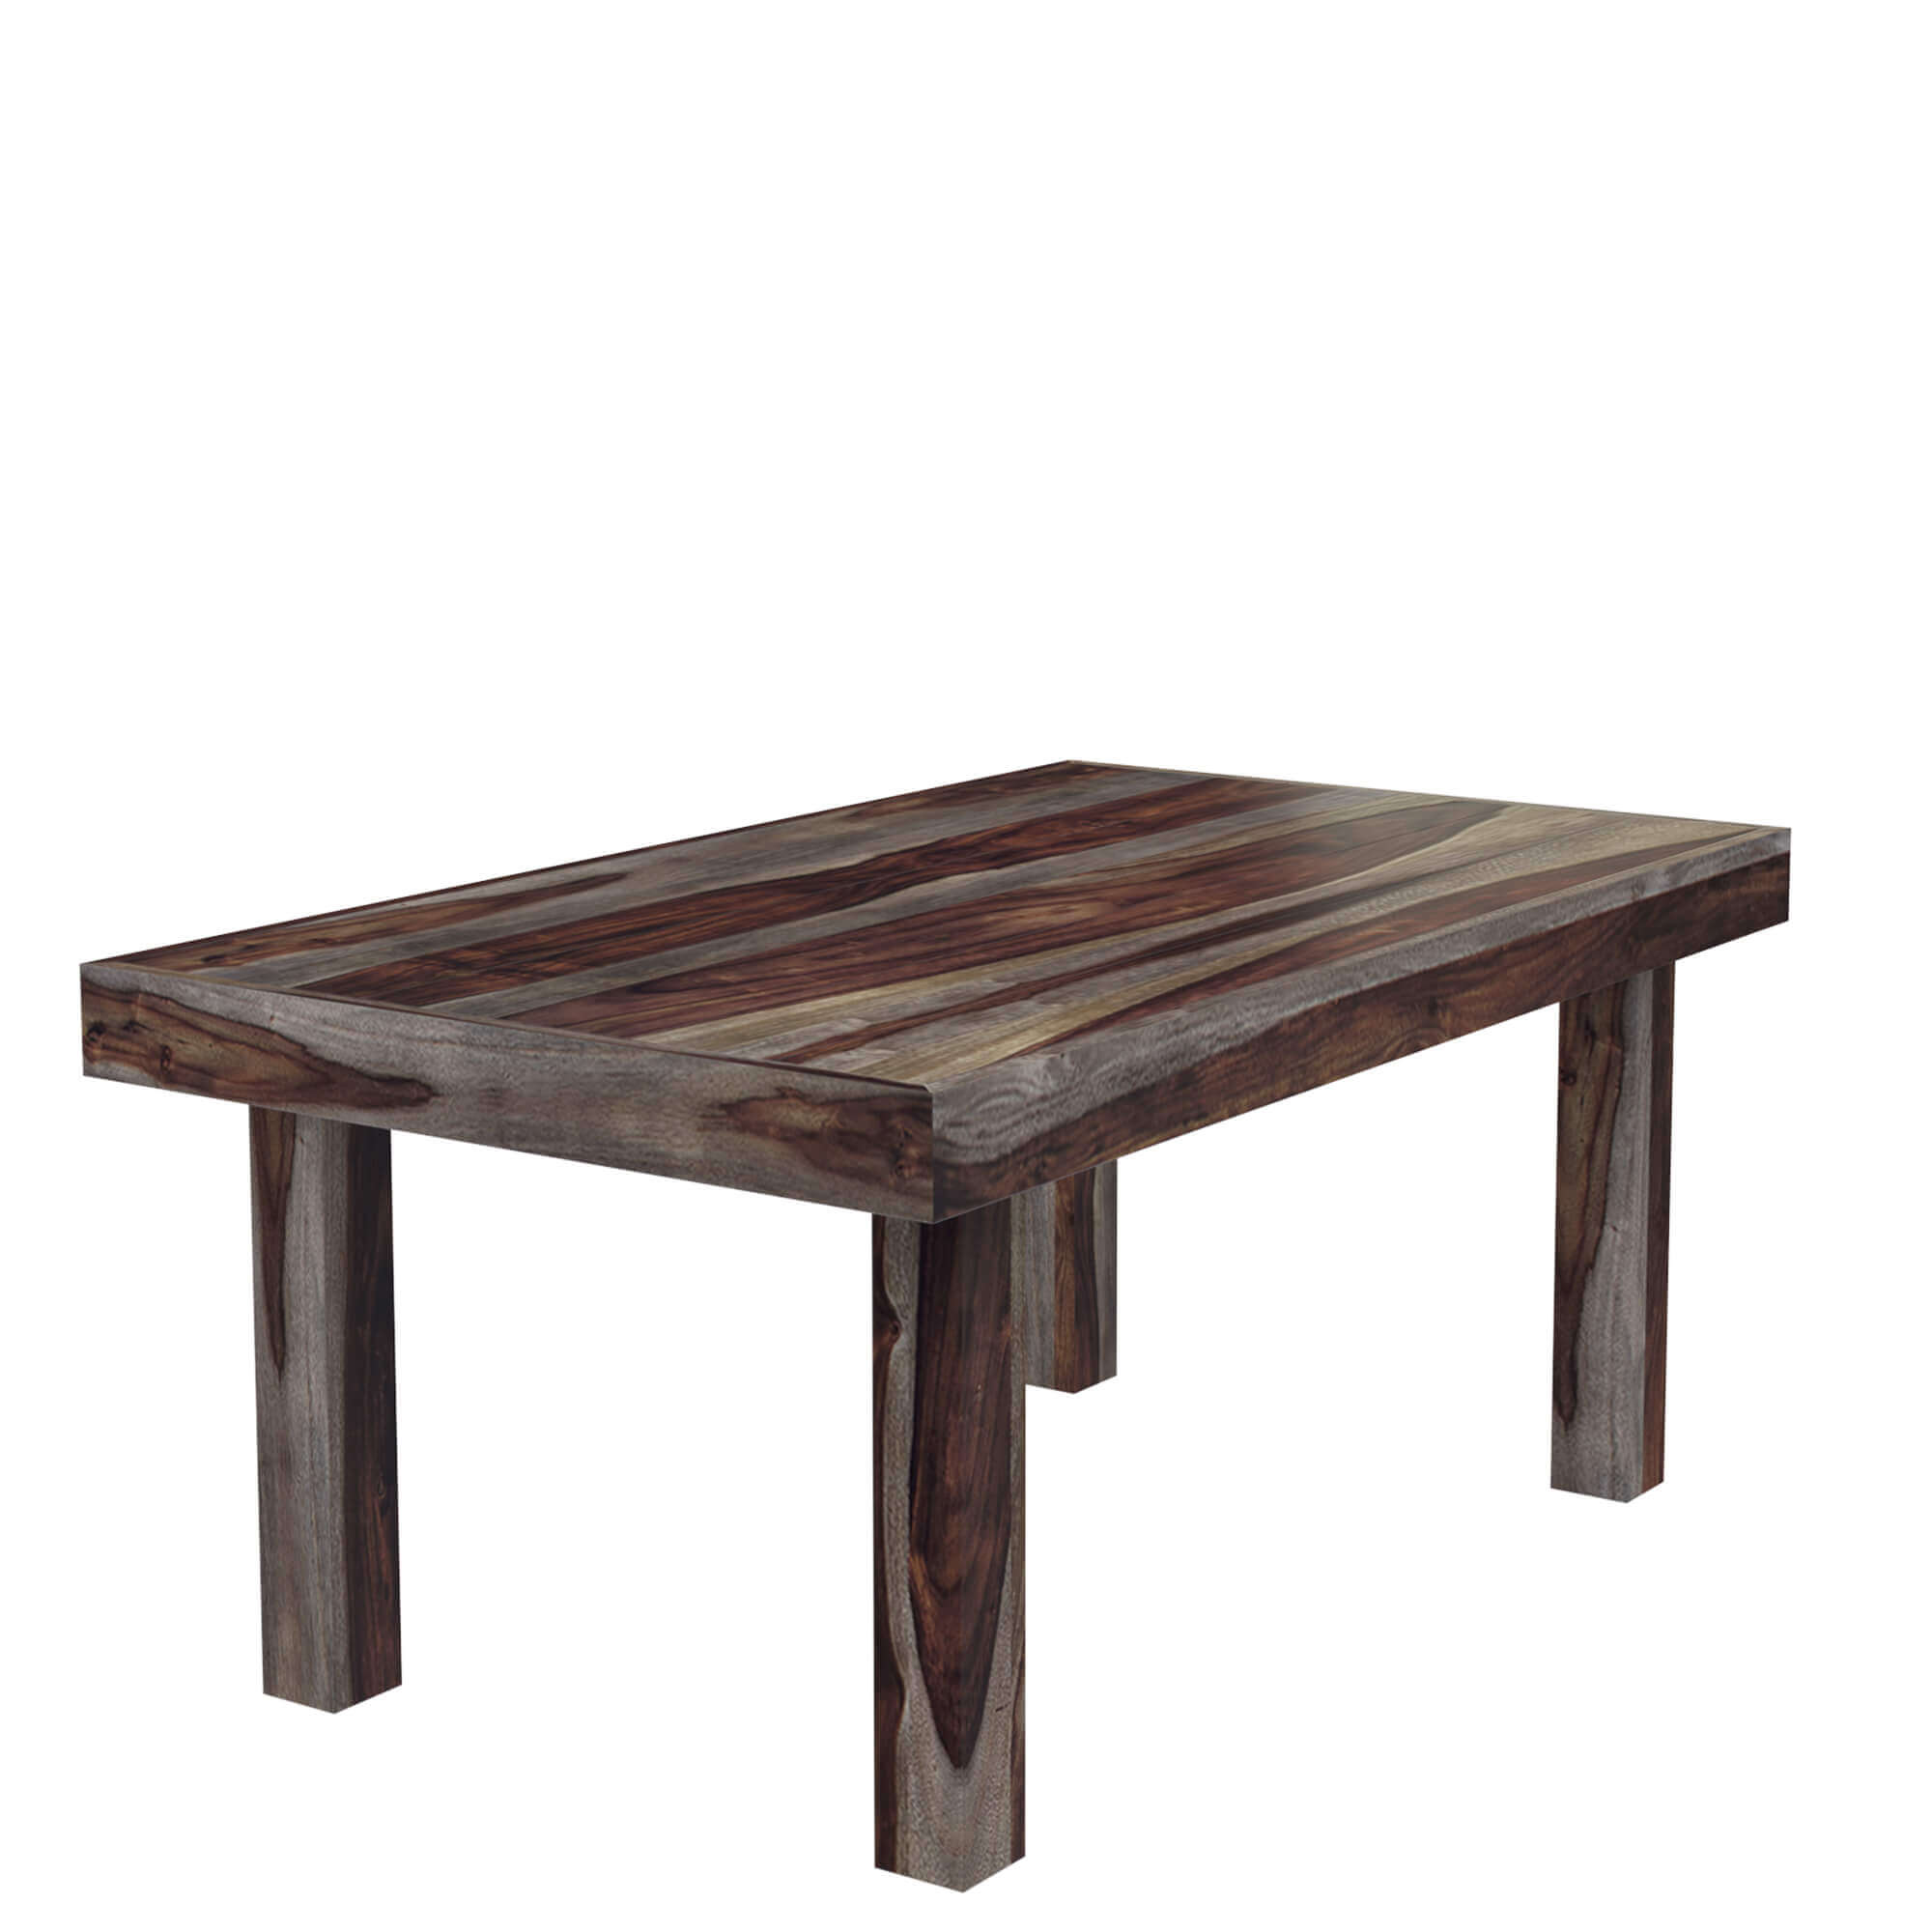 Frisco modern solid wood rectangular rustic dining room table for Unique dining tables